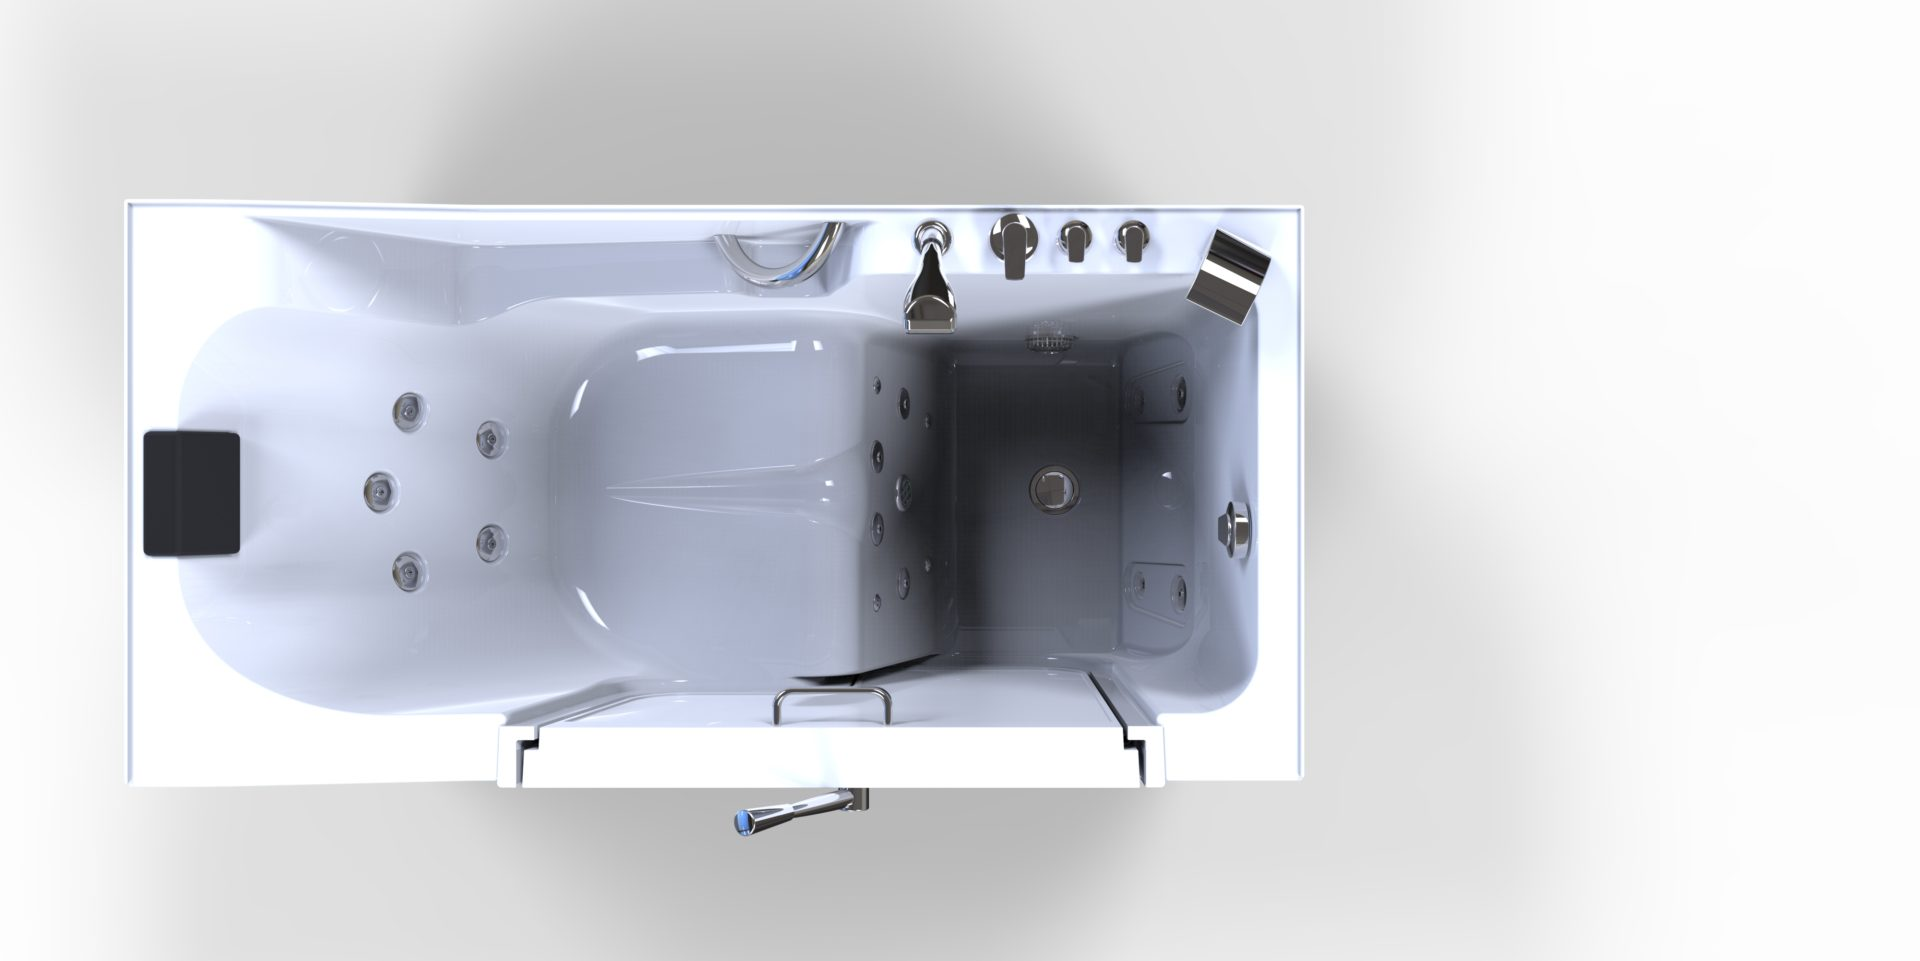 3d model of Oasis style walk-in bathtub, door closed, no water, from above